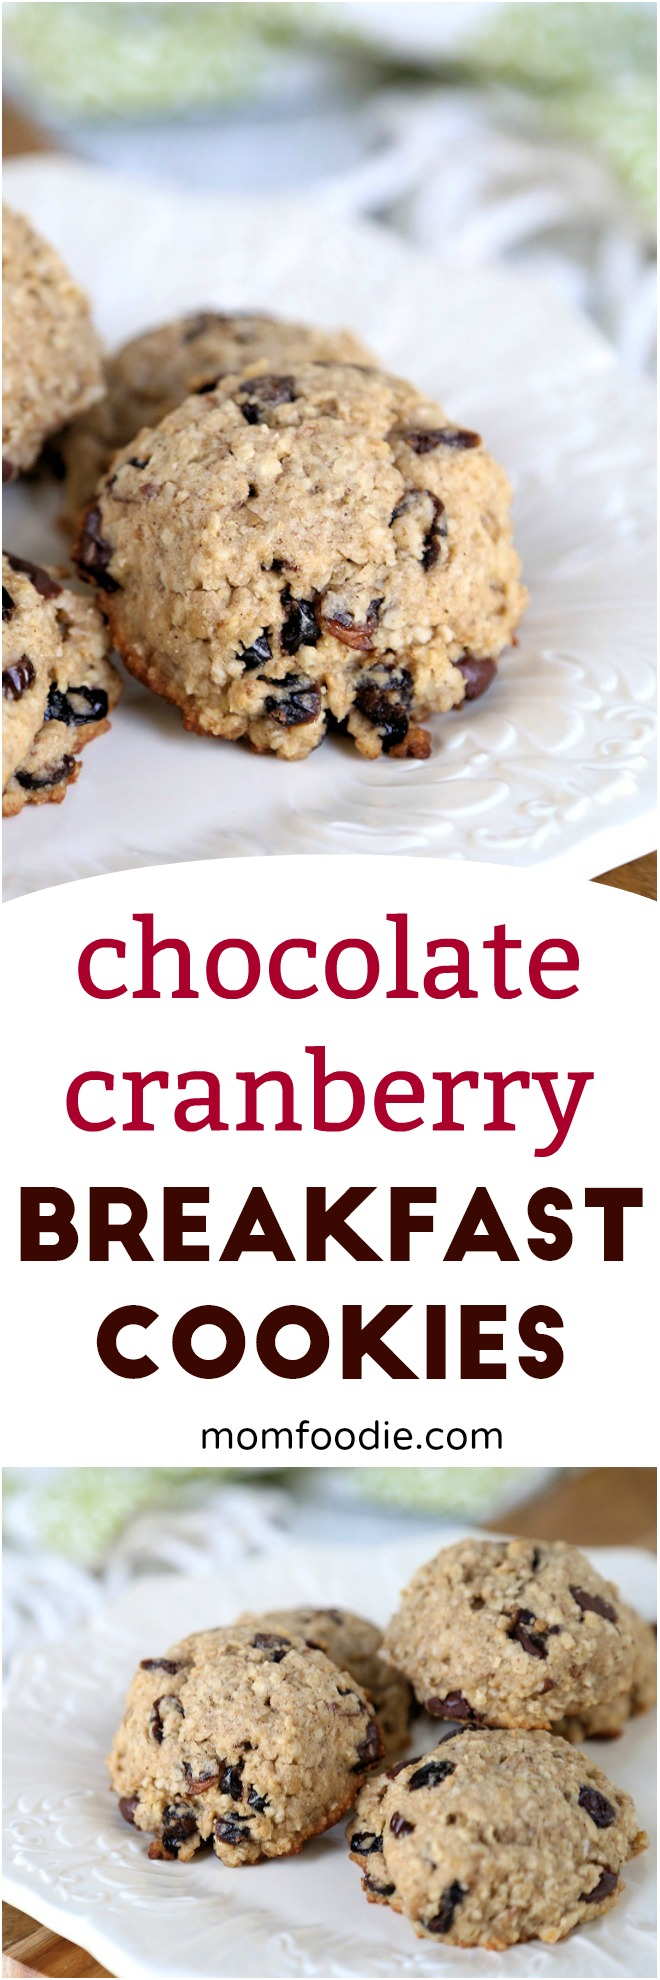 Cranberry Oatmeal Breakfast Cookies with Chocolate Chips - Healthy Breakfast Cookies Recipe #cookies #breakfast #oatmealcookies